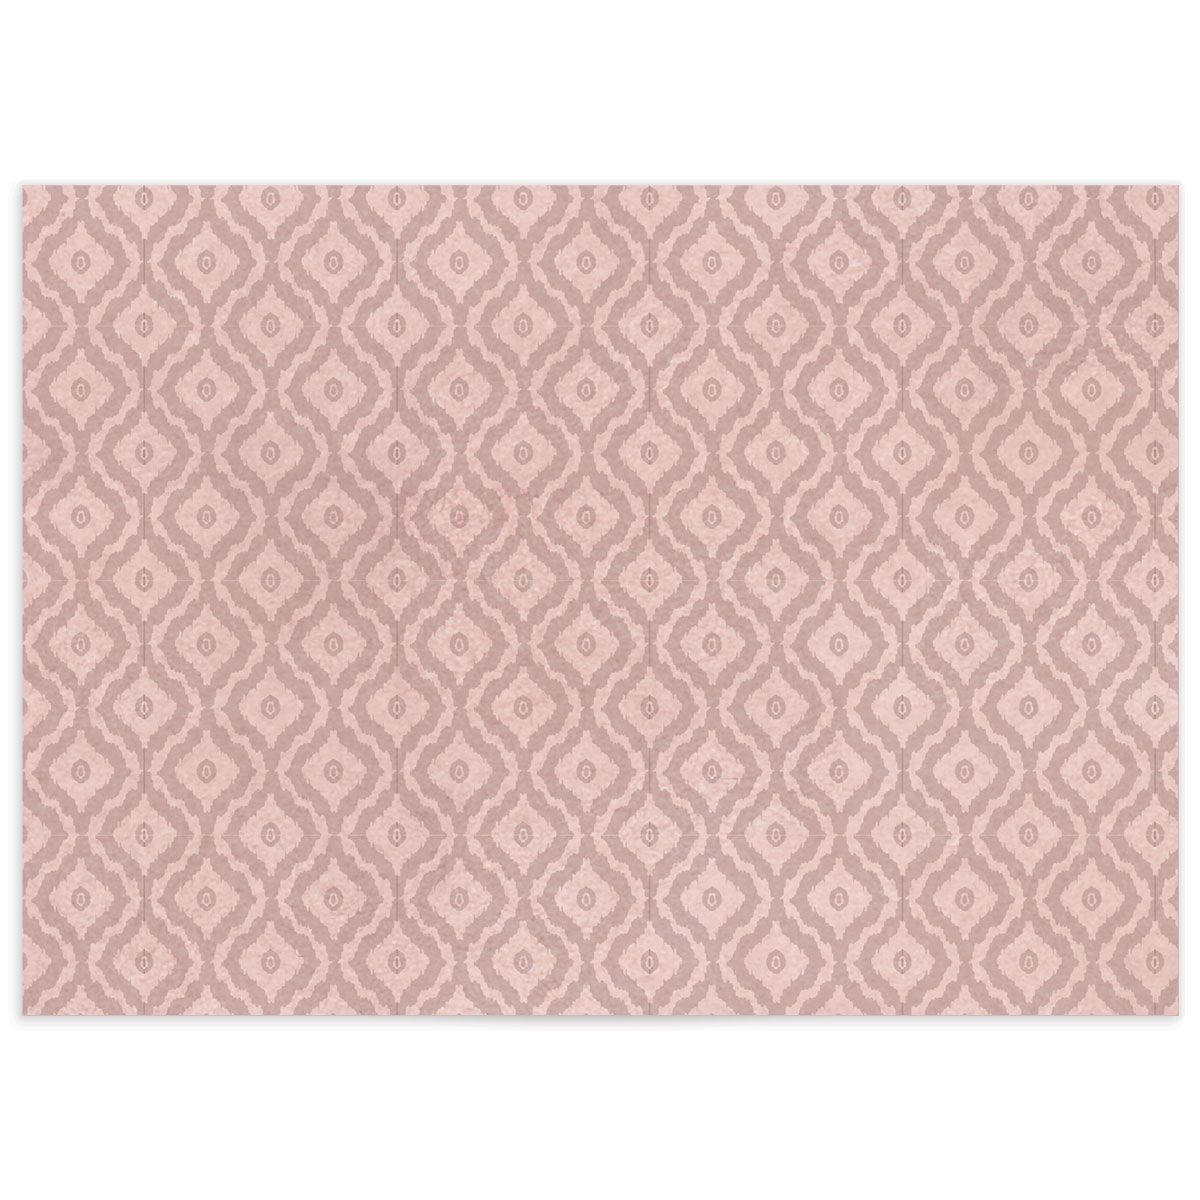 painted desert wedding enclosure cards in pink back